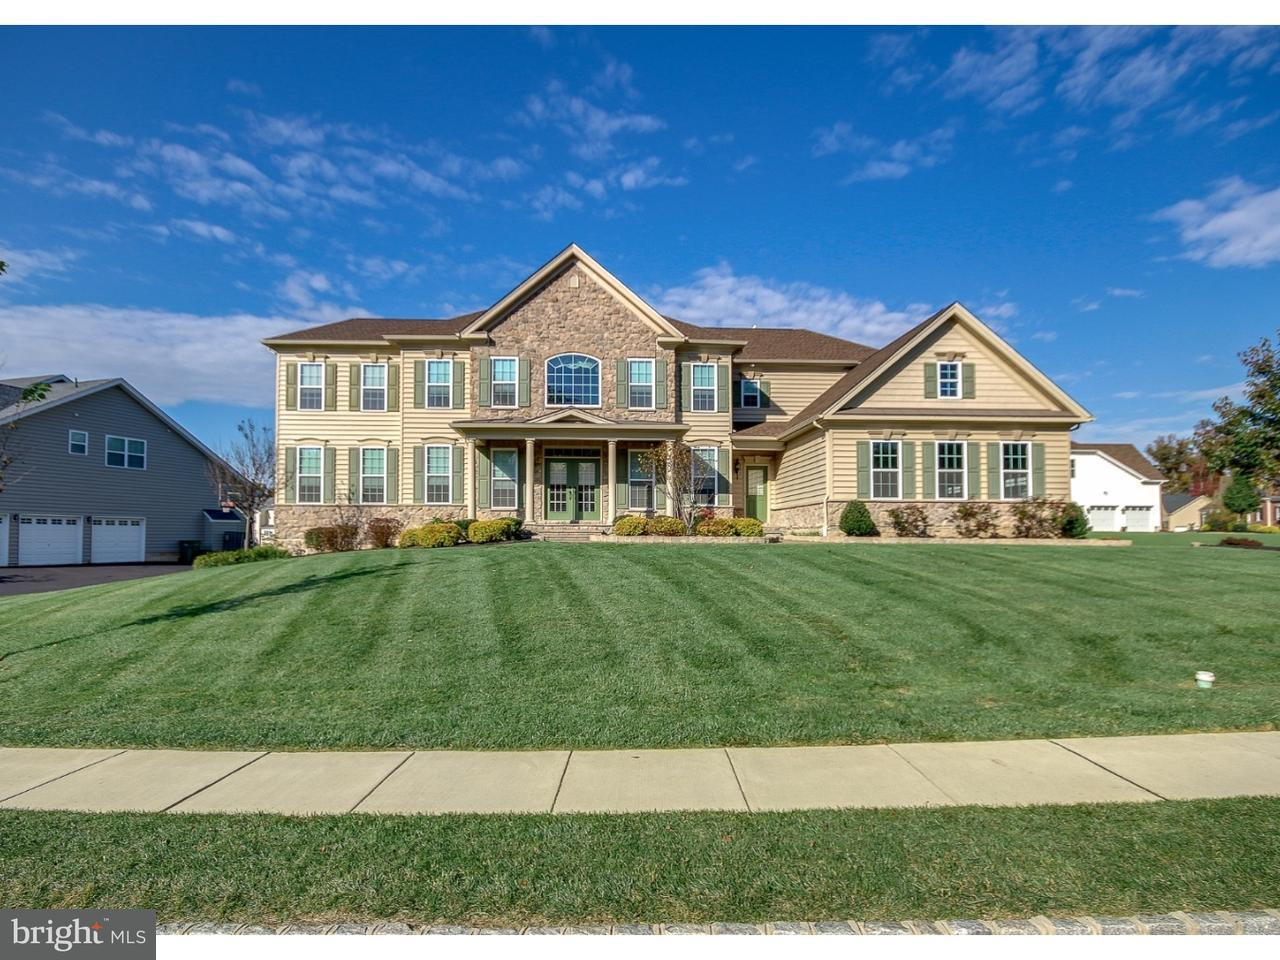 Single Family Home for Sale at 710 RUSSELLS WAY Warrington, Pennsylvania 18976 United States